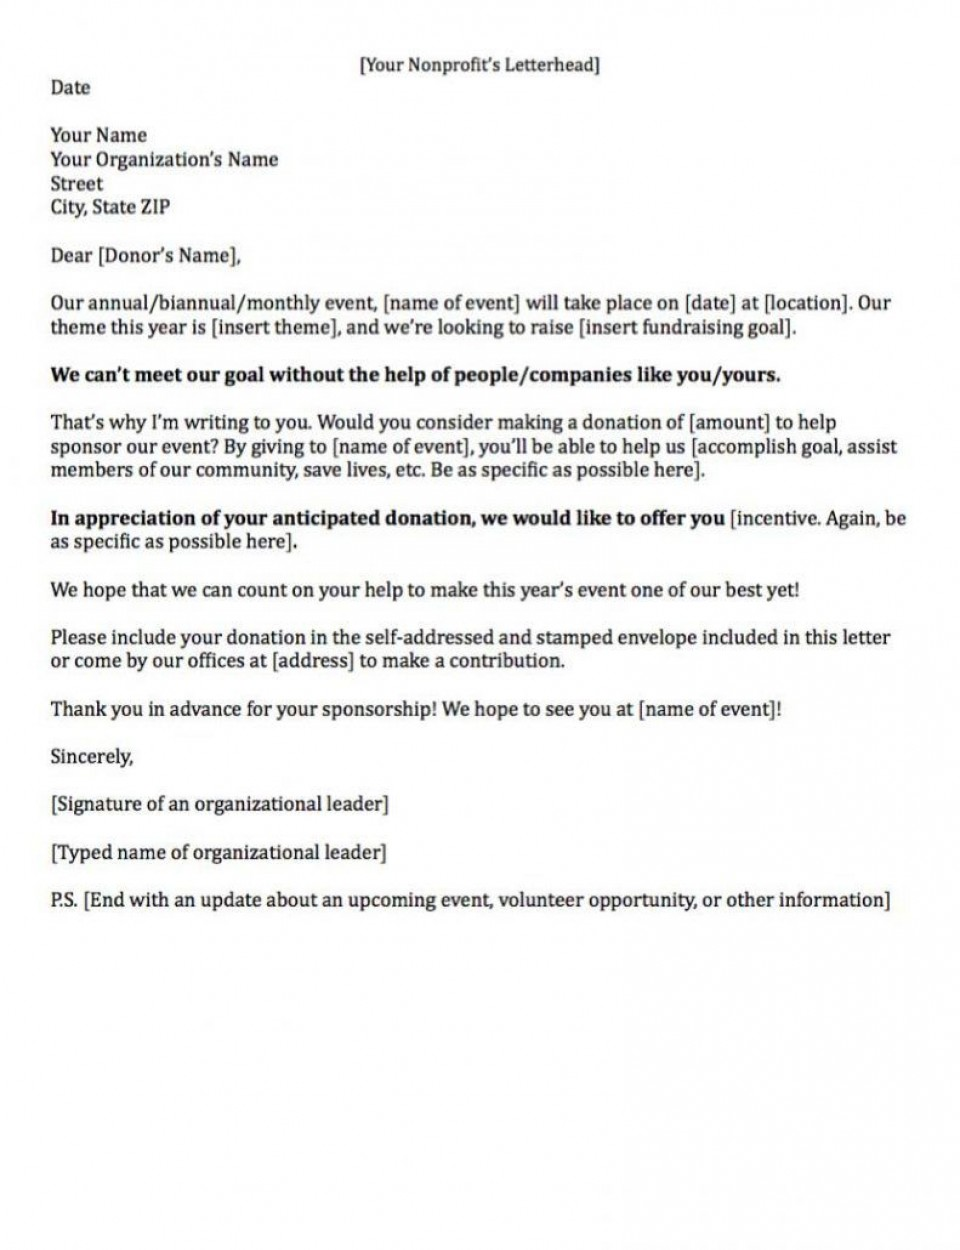 008 Archaicawful Fund Raising Letter Template Idea  Fundraising For Mission Trip School Sample Of A Nonprofit Organization960